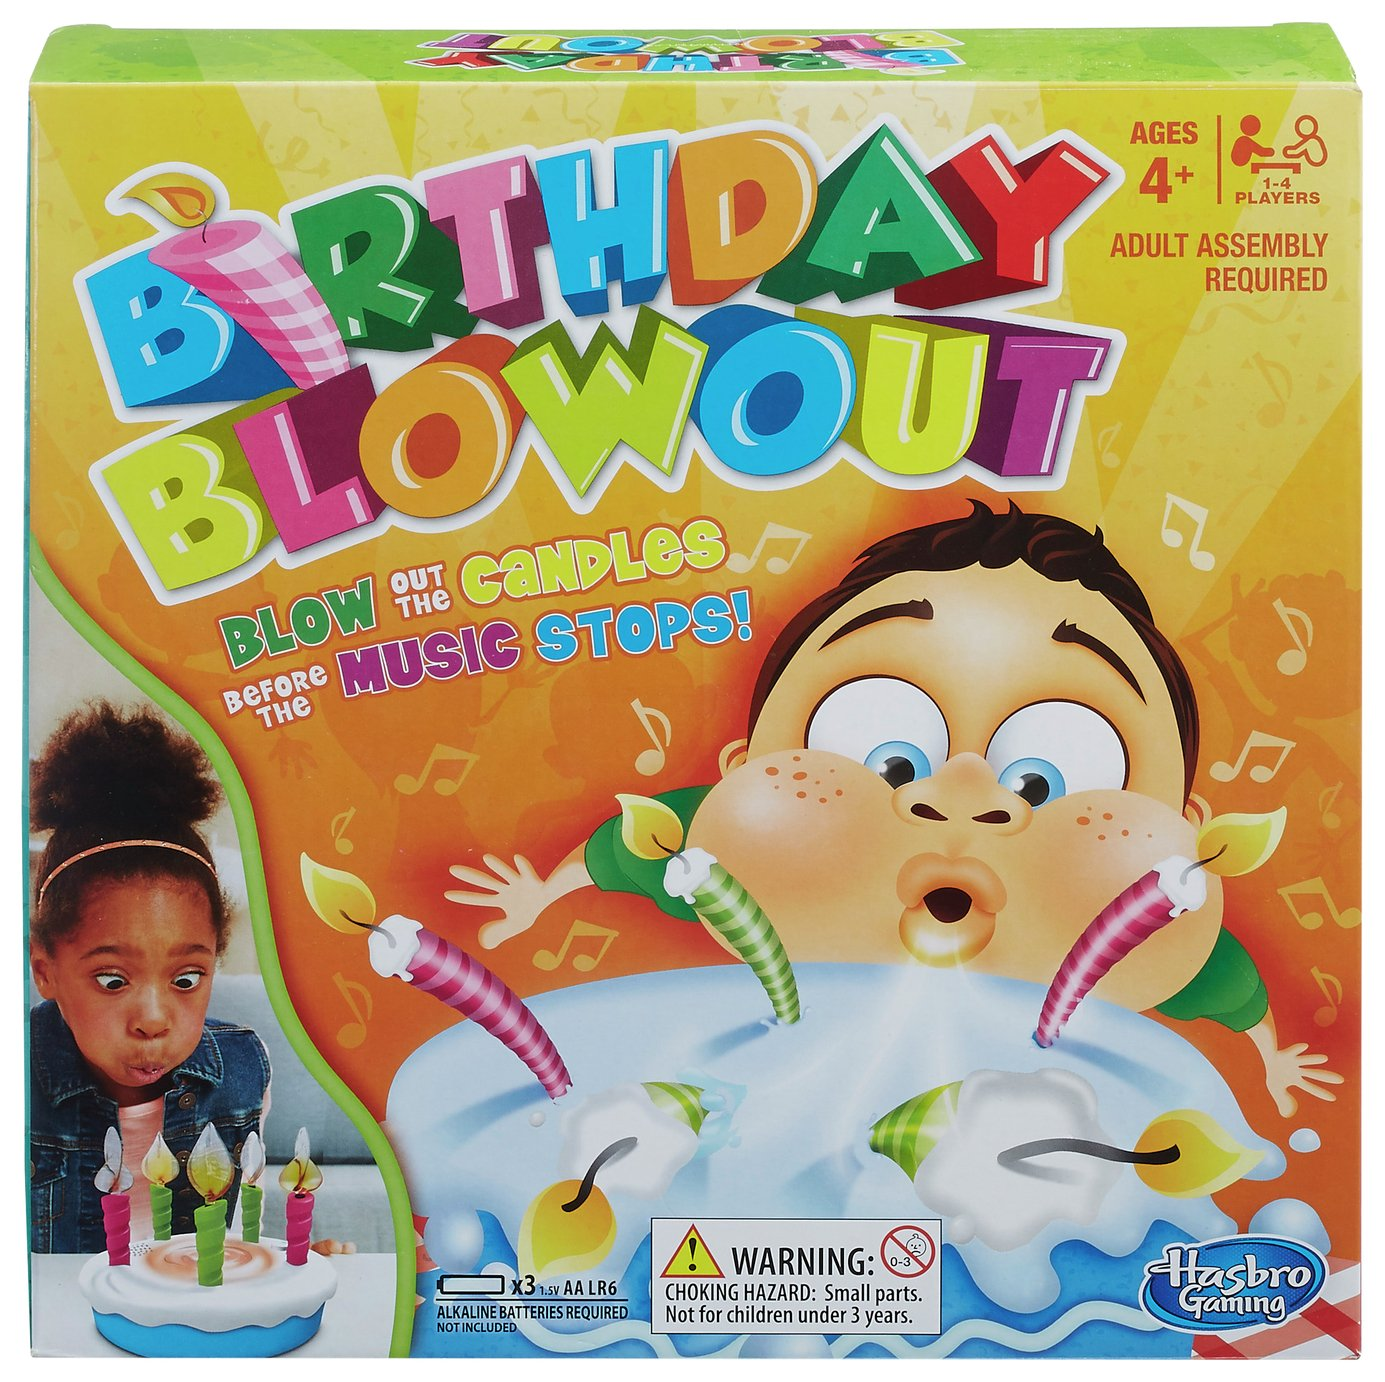 Birthday Blowout Game from Hasbro Gaming